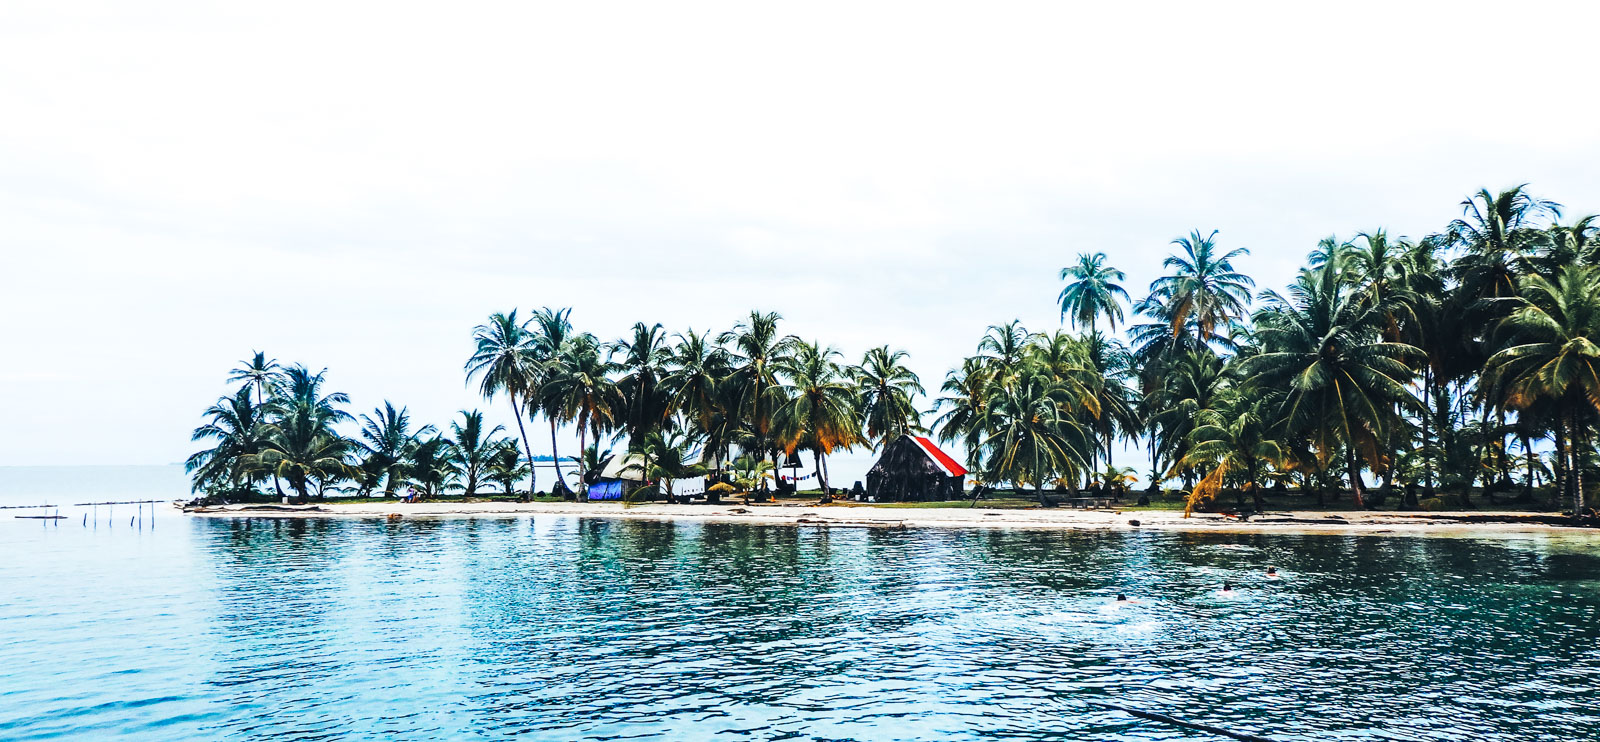 Sailing San Blas Islands the epic 5 day sea adventure. A view of one of the islands from the boat with a small hut in between the palm trees